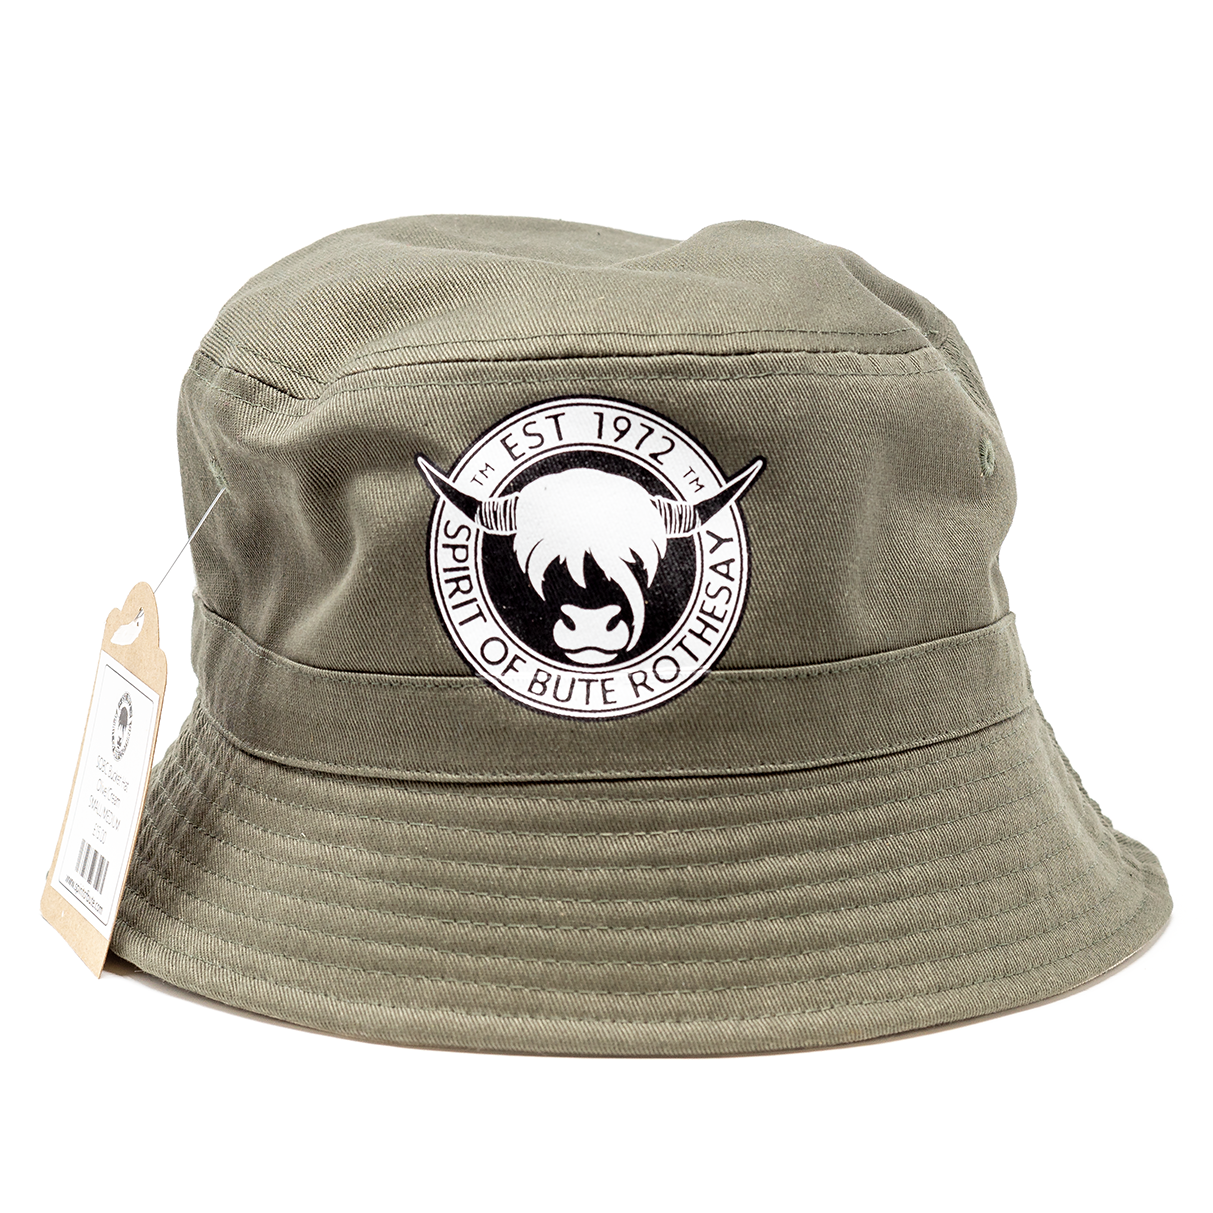 SOBC Bucket Hat (Olive/Cream)